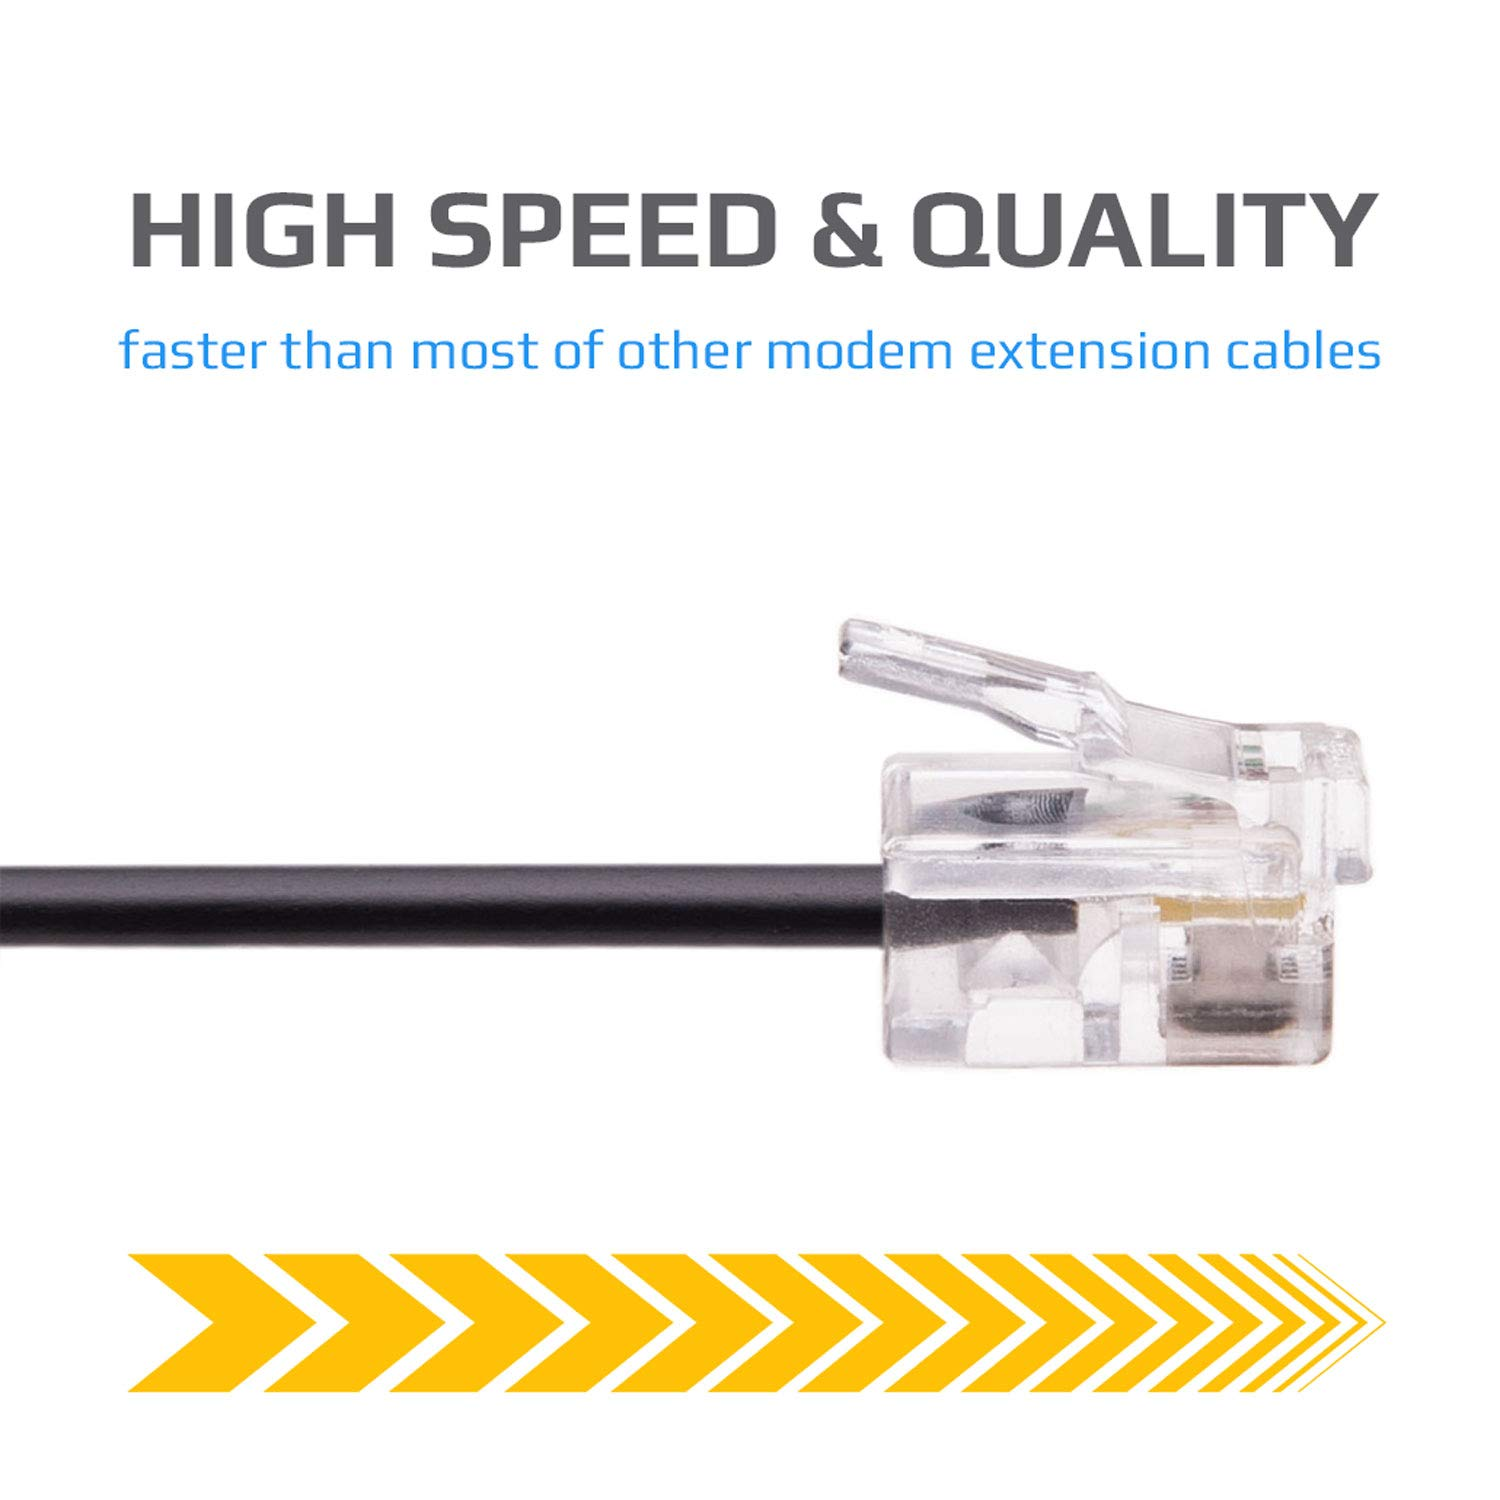 Landline Wire Microfilter RJ11 3ft Cord ADSL Extension Lead Phone Cable Telephone Plug High Speed Internet Broadband Male to Male Router and Modem to RJ11 Phone Socket Black